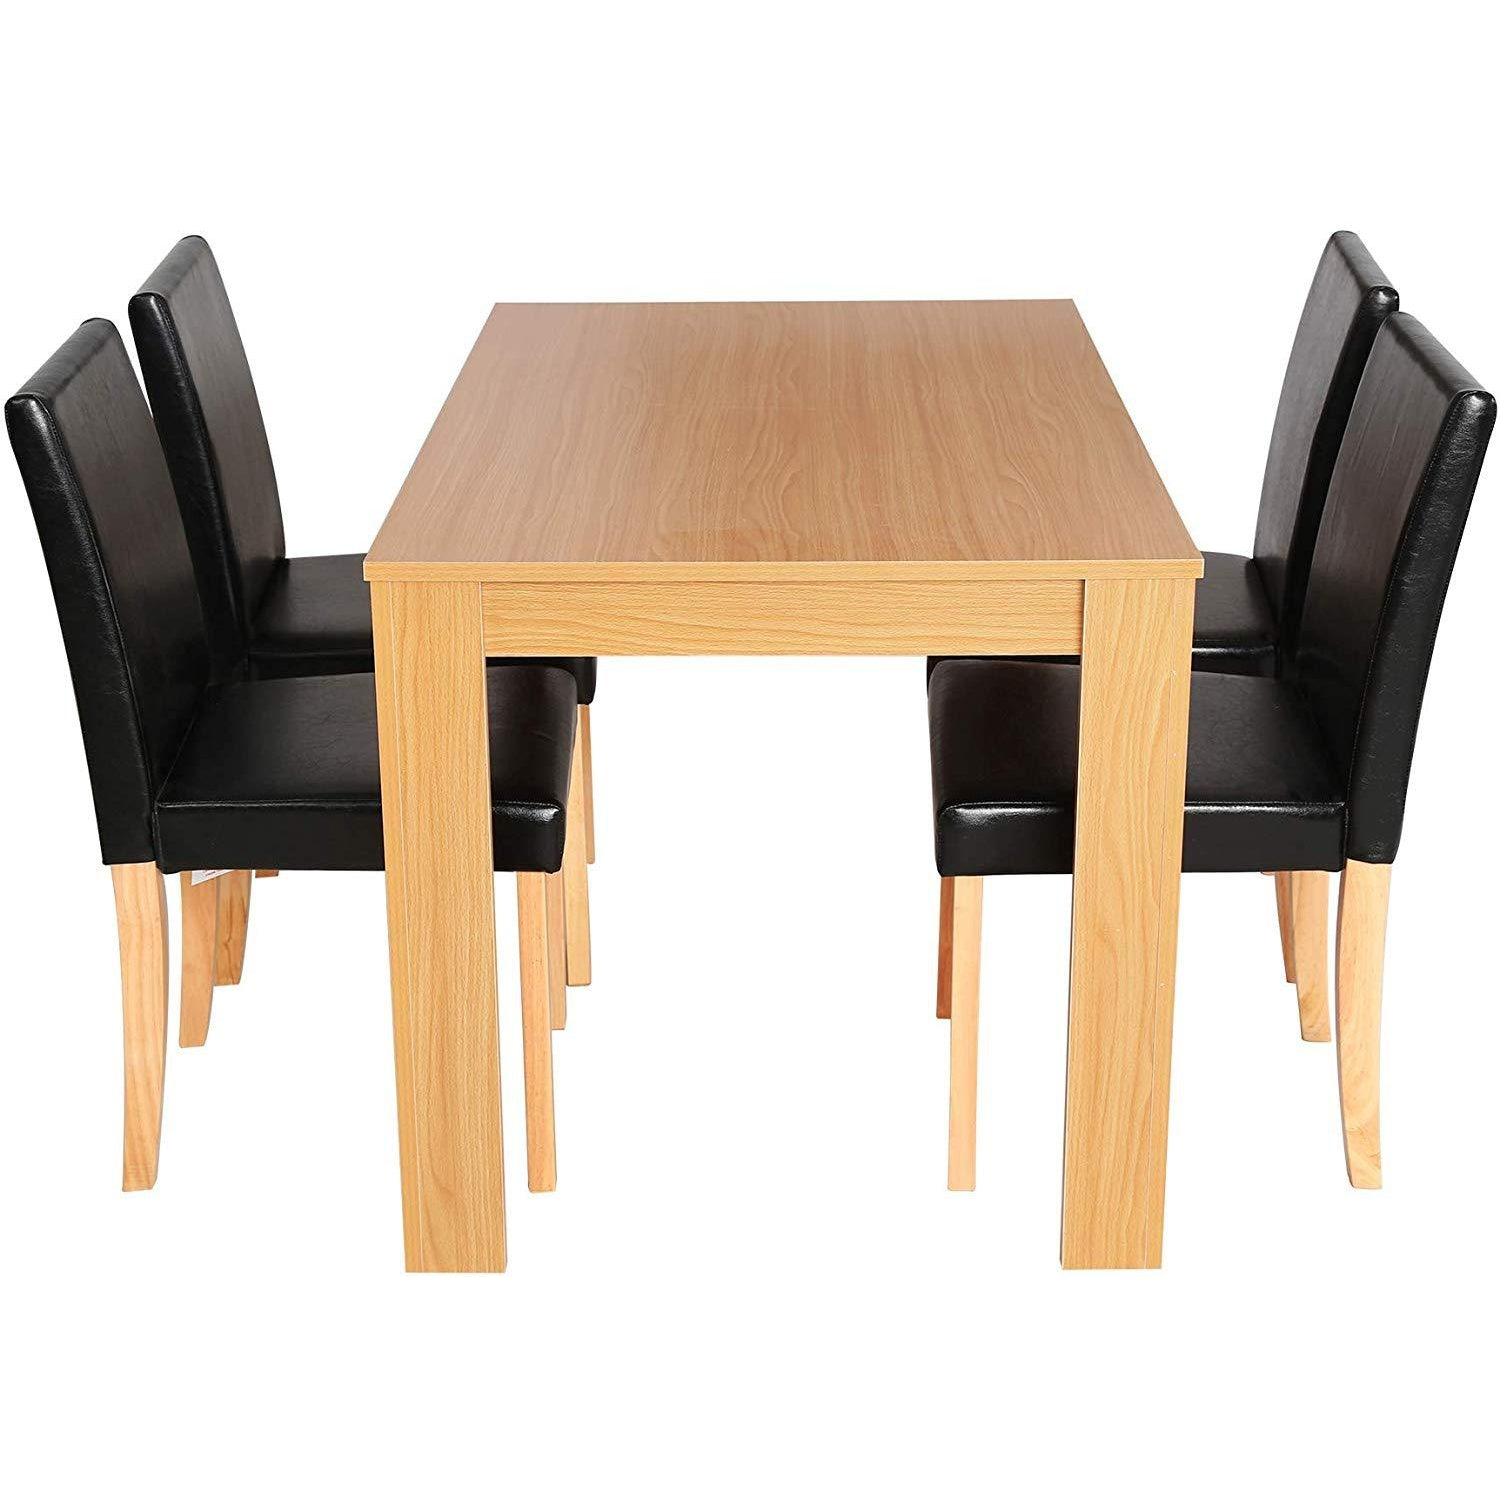 Cherry Tree Furniture 5-Piece Dining Room Set 4-Seater ...